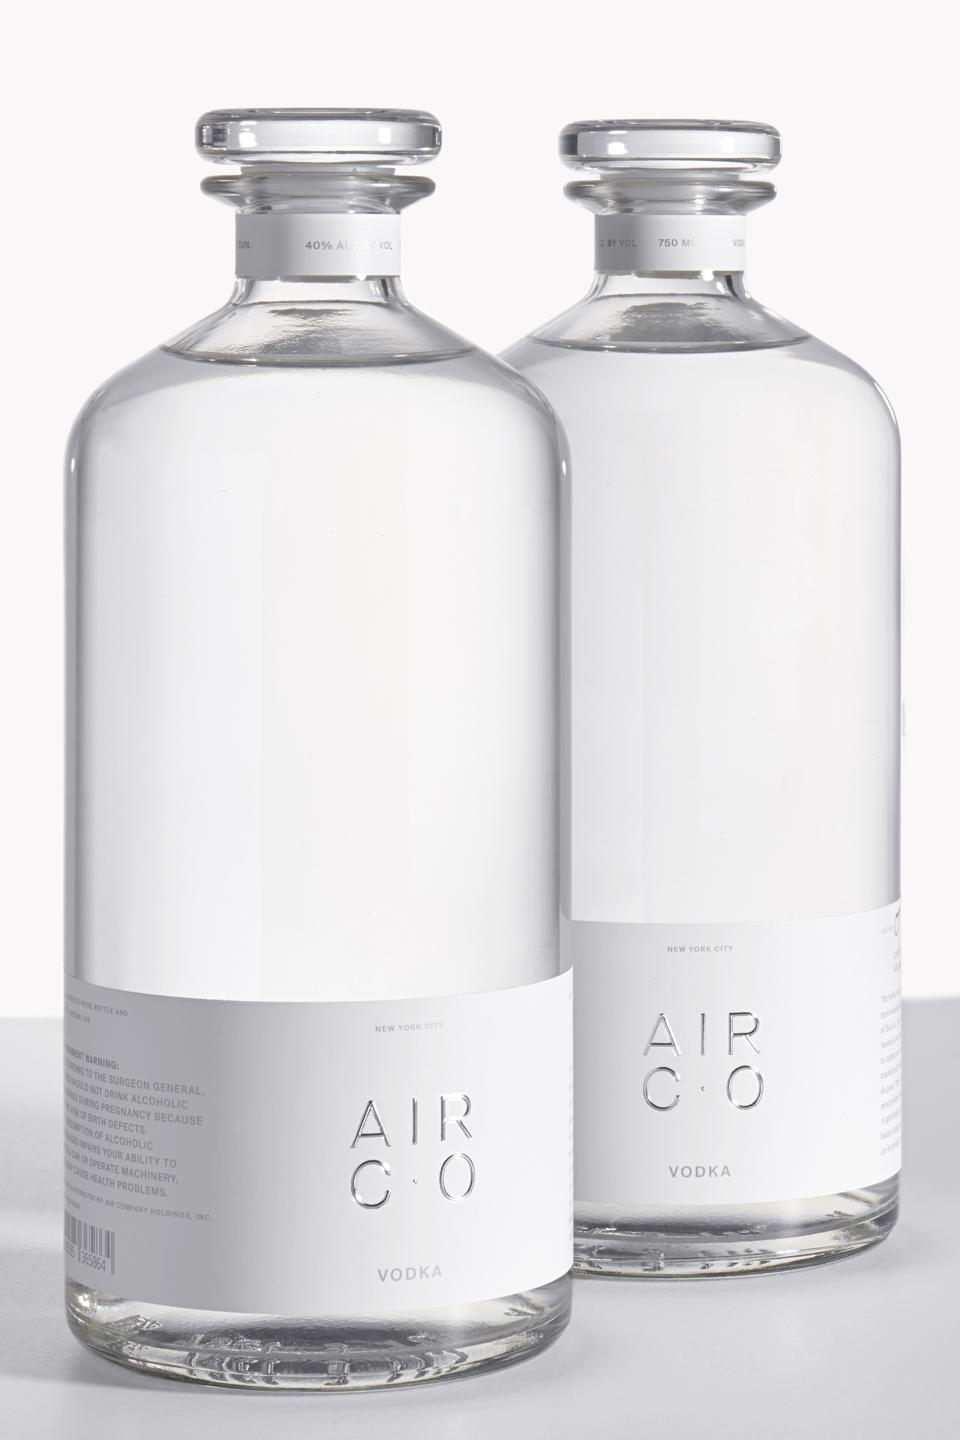 two bottles of air vodka from Air Company